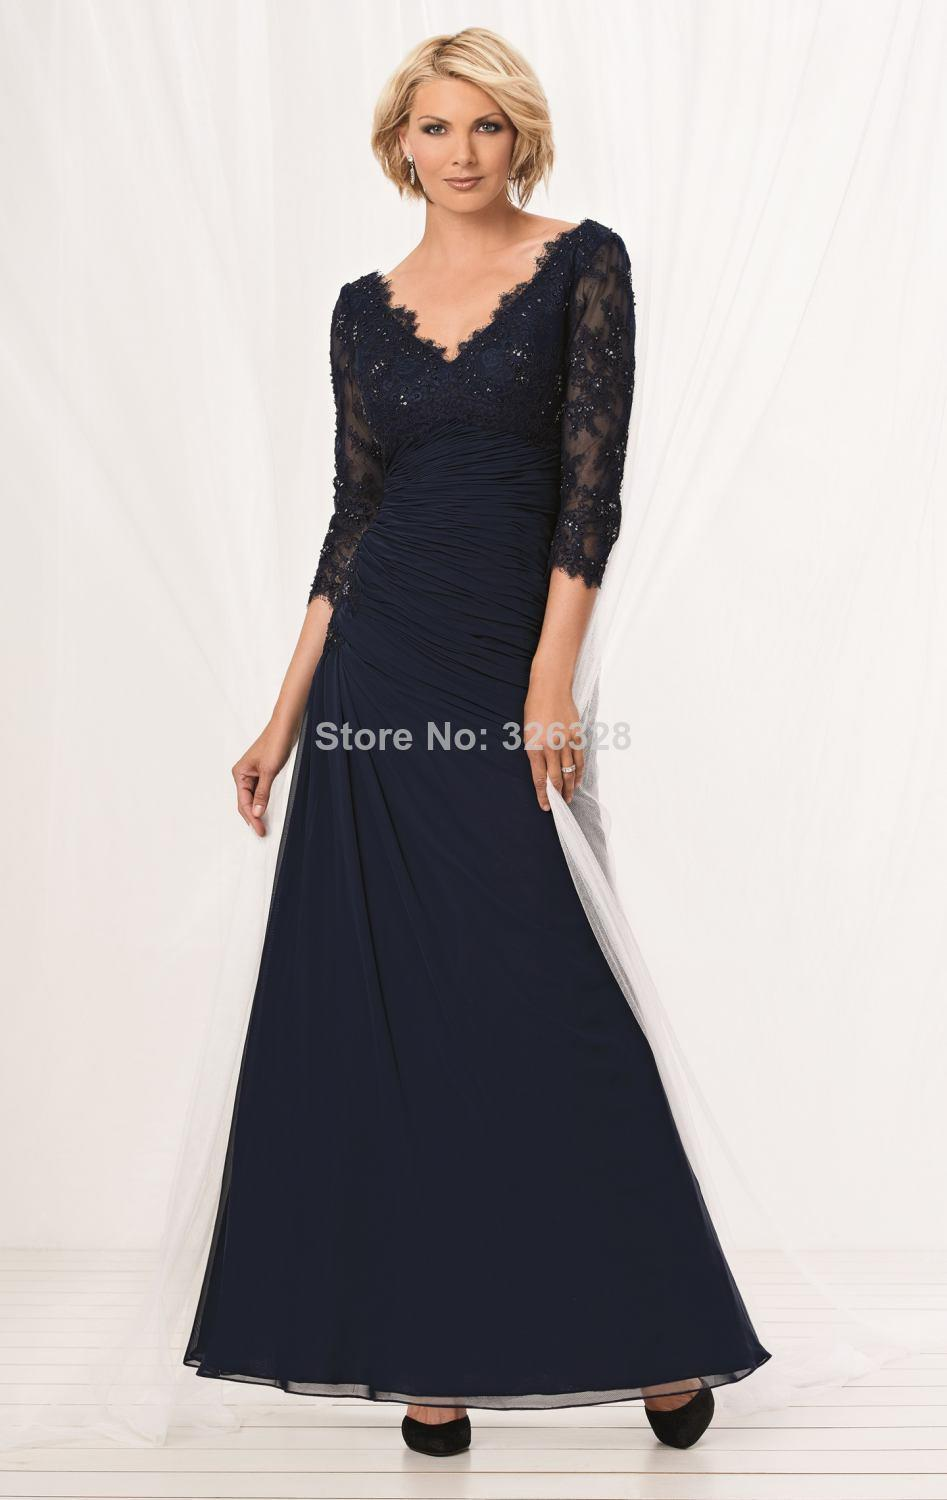 gnochc+louisiana+medicaid+expansion jcpenney wedding dresses outlet Plus size wedding dresses at jcpenney Prom Dresses Short Long Plus Size